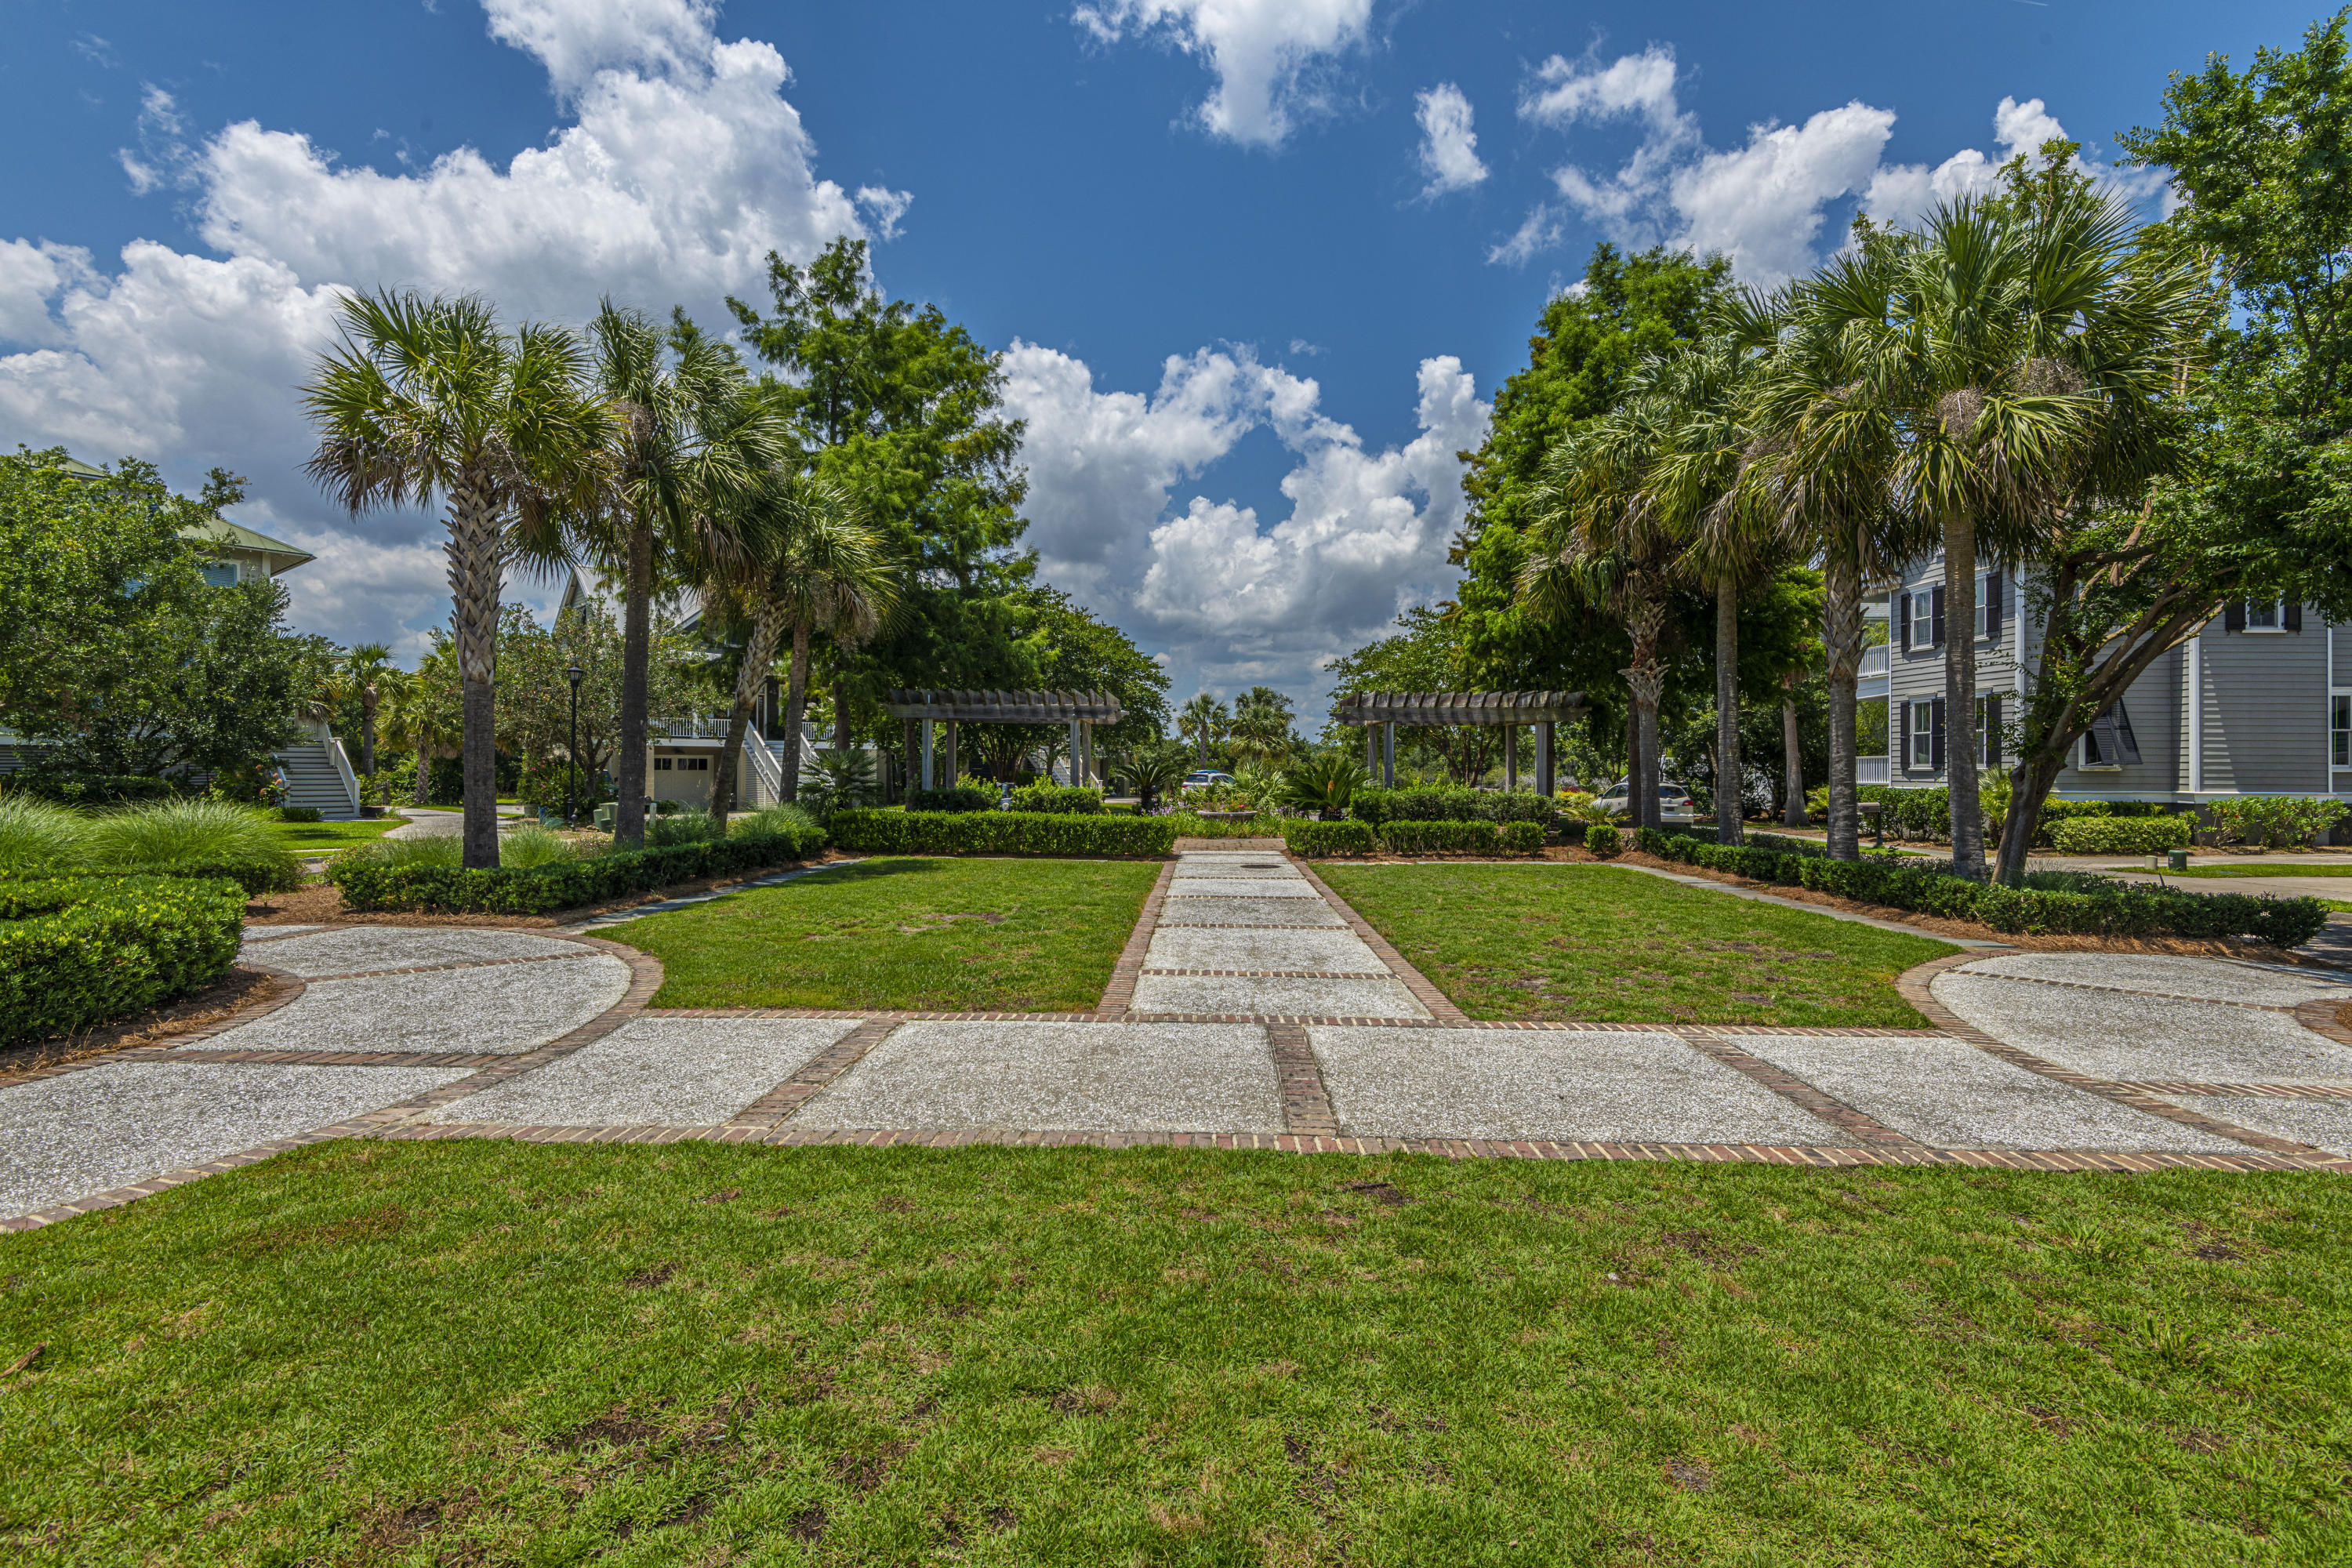 Belle Hall Homes For Sale - 308 Bermuda Towne Row, Mount Pleasant, SC - 27